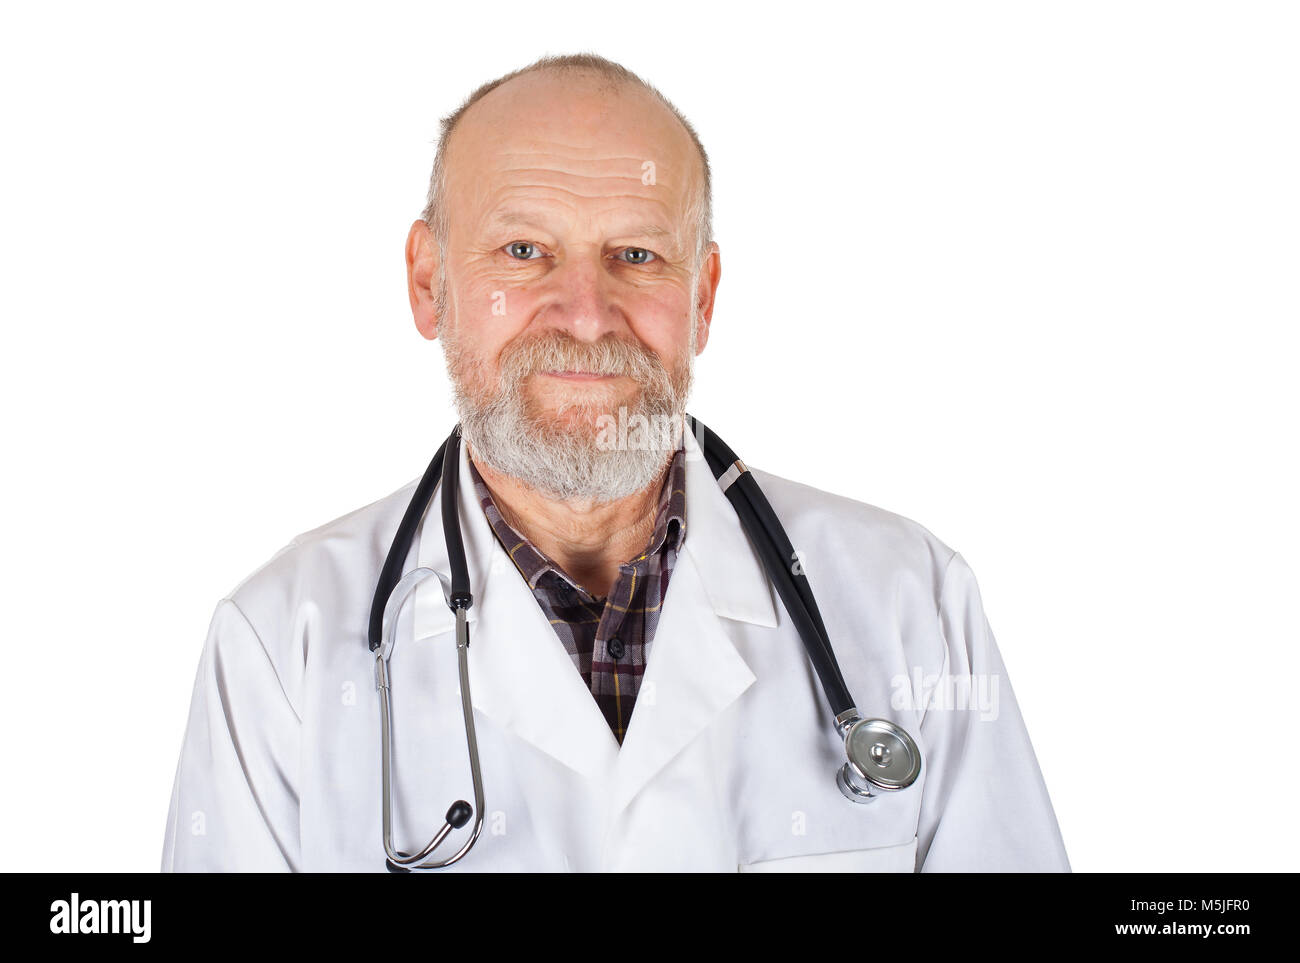 Portrait of mature medical doctor with white coat and stethoscope on isolated background - Stock Image